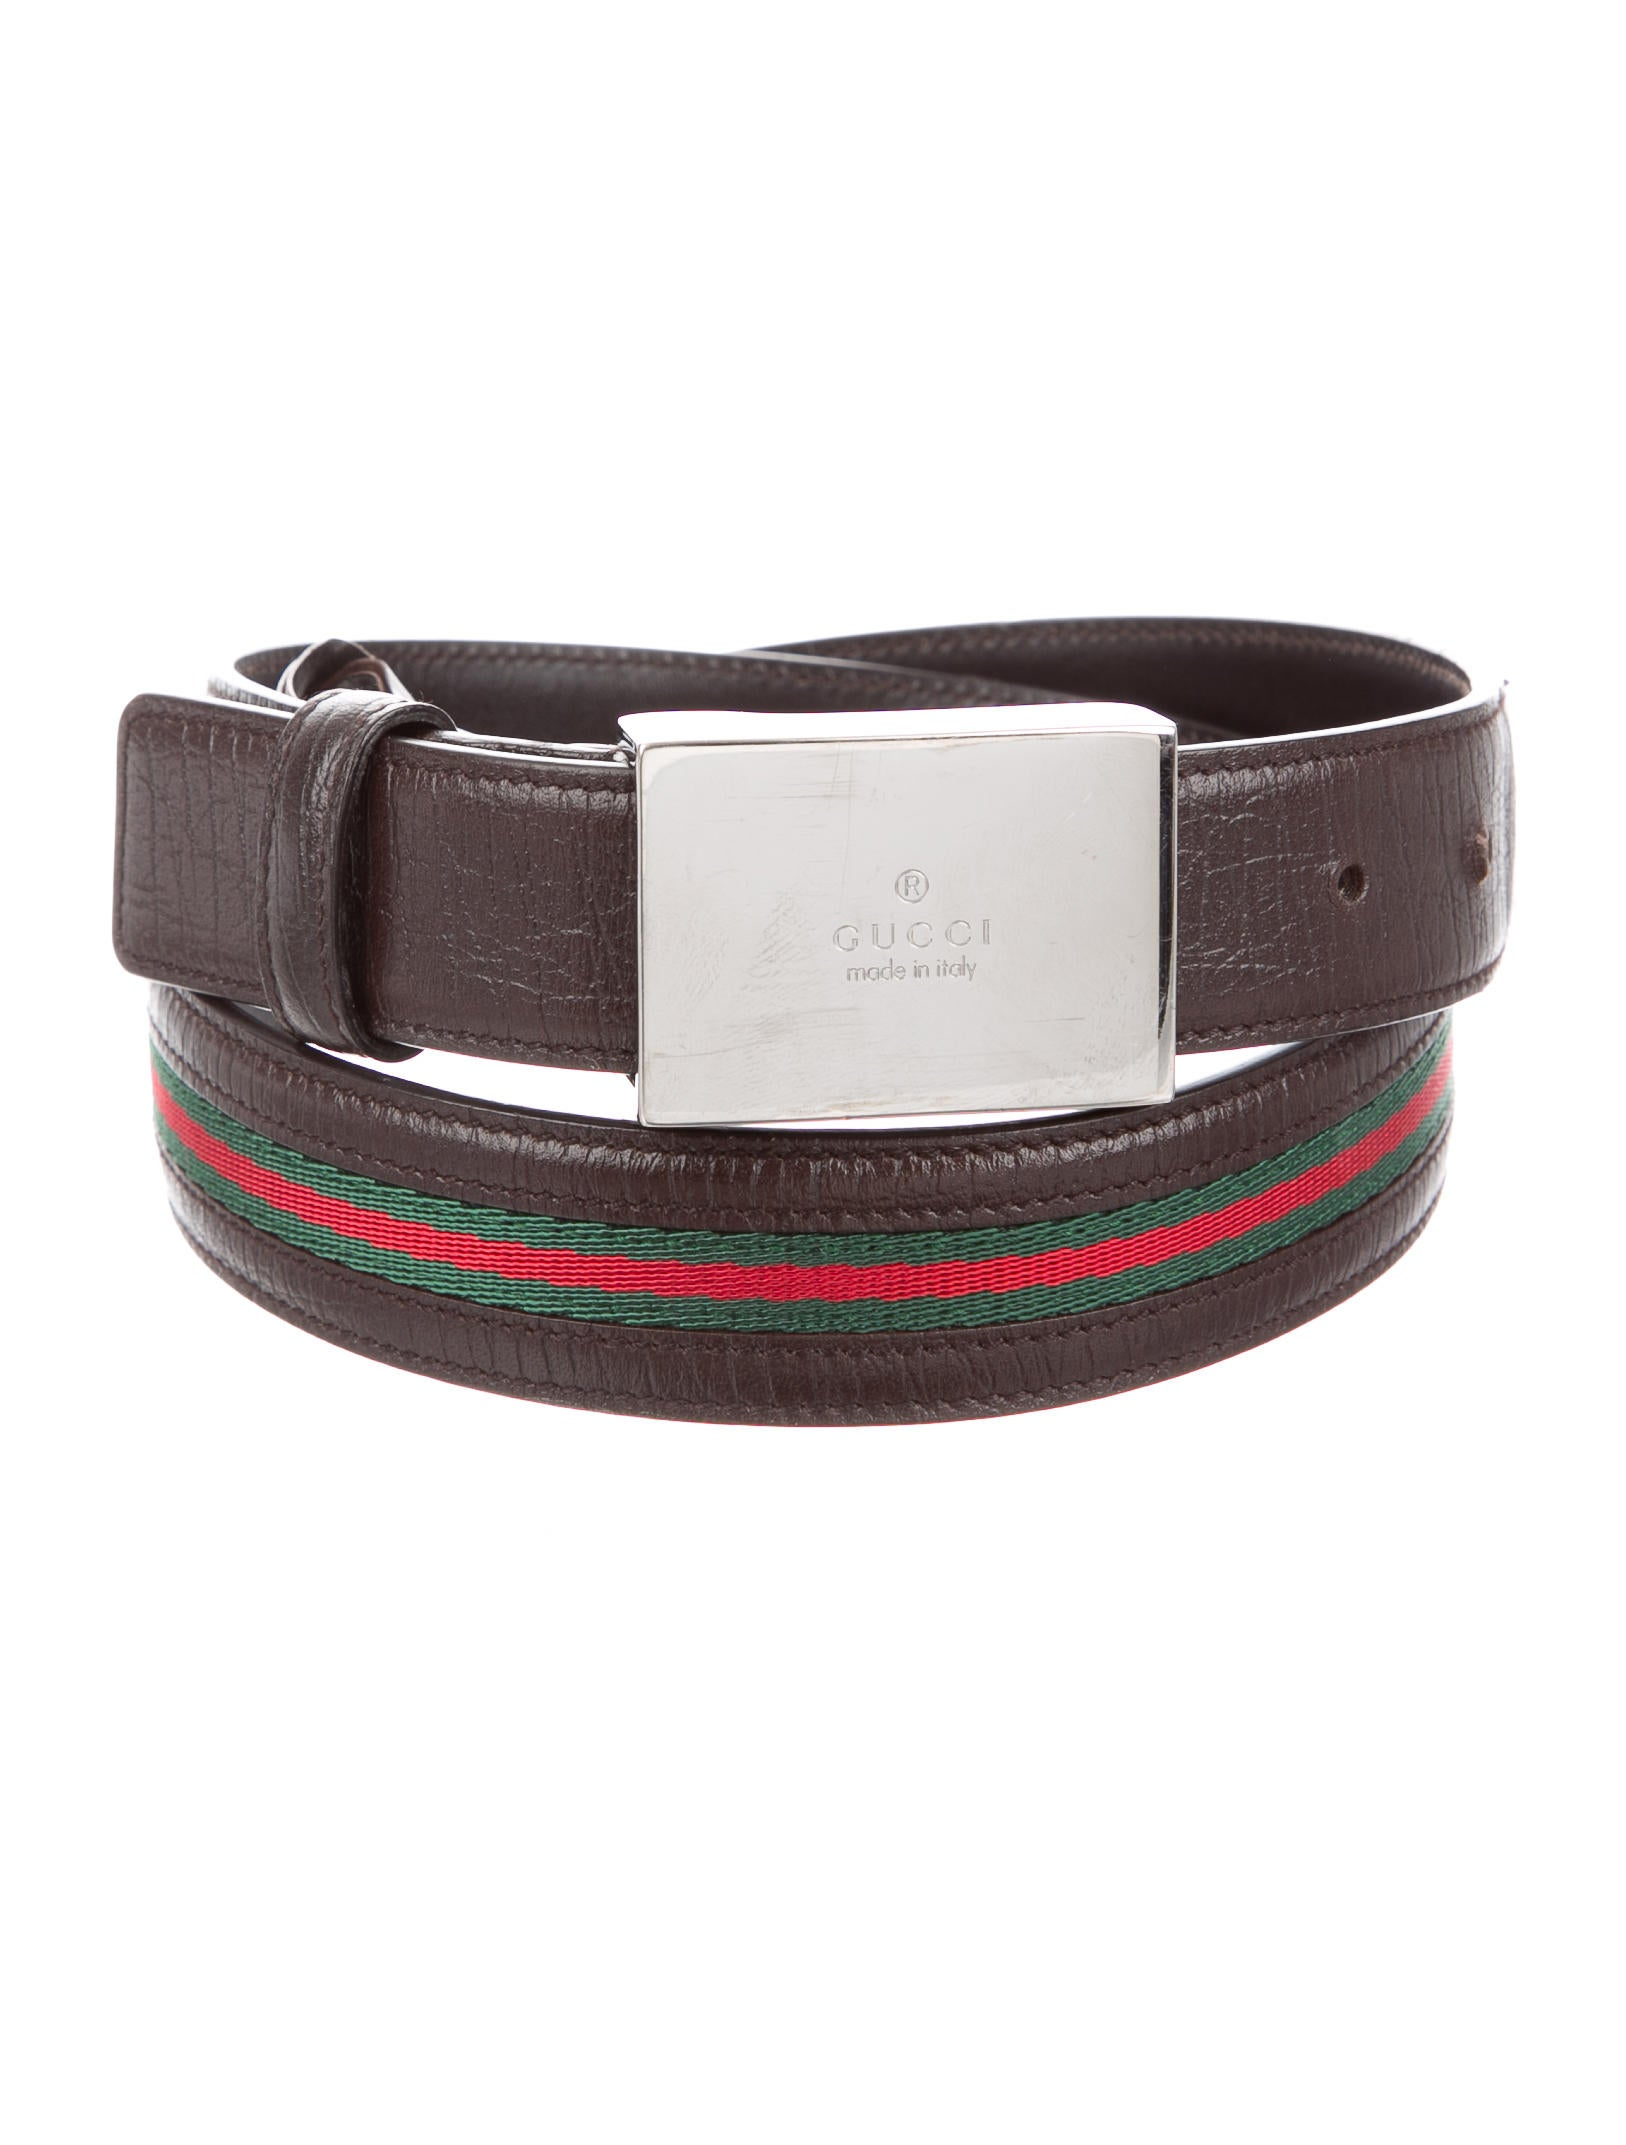 Free shipping BOTH ways on fred perry leather webbing belt, from our vast selection of styles. Fast delivery, and 24/7/ real-person service with a smile. Click or call